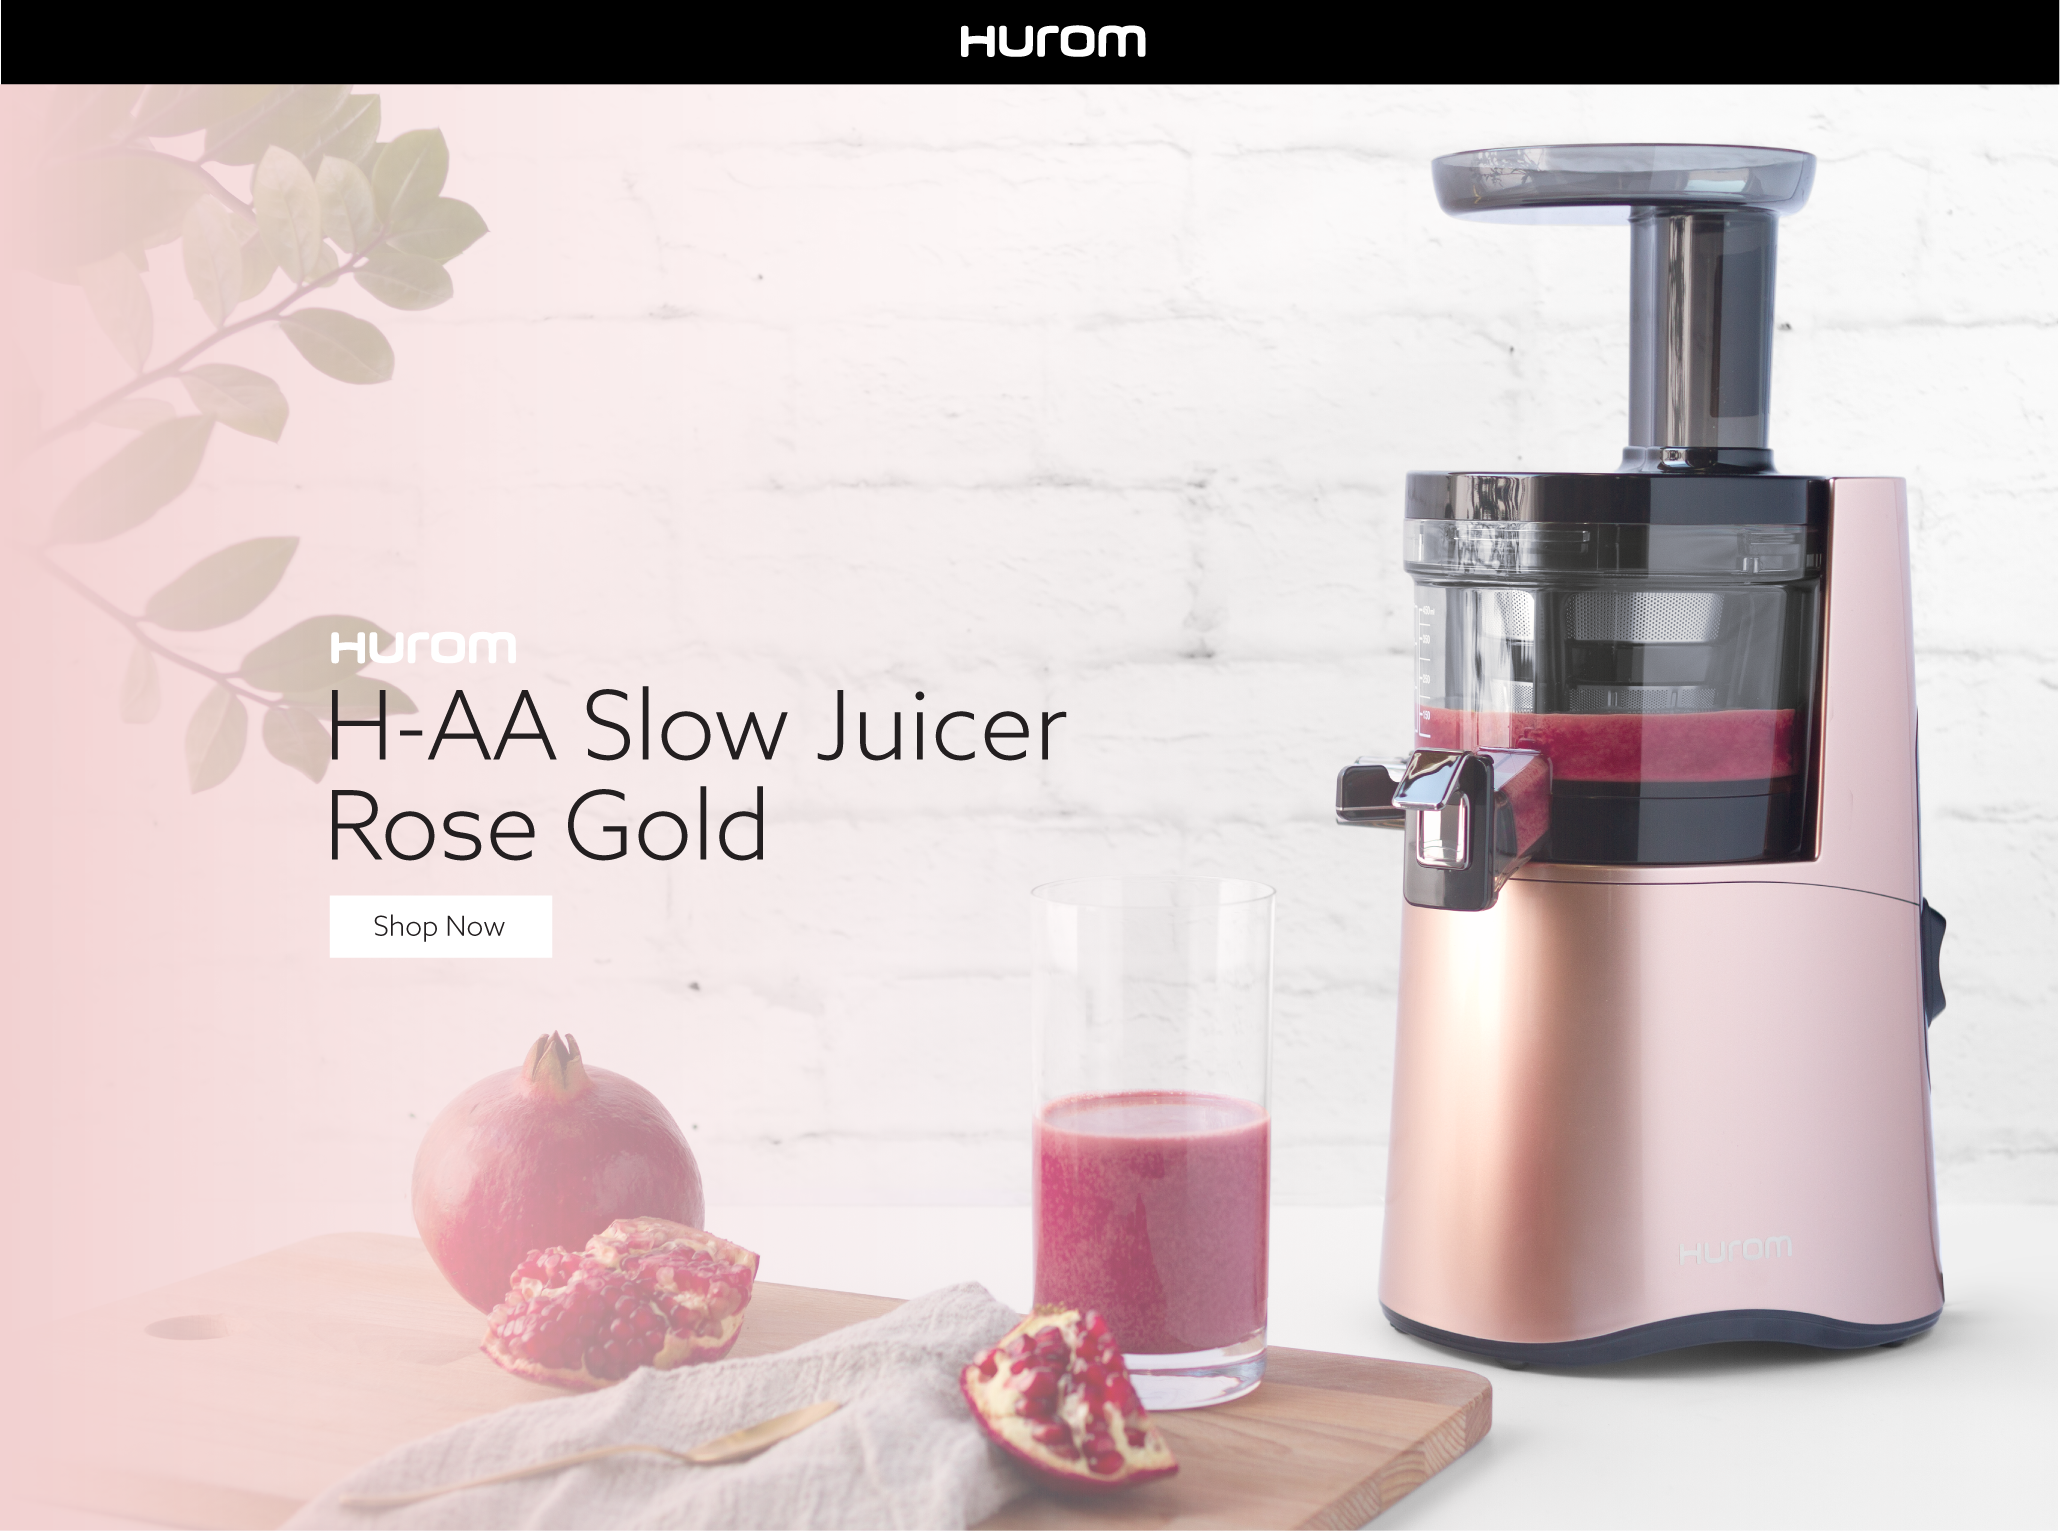 Hurom H Aa Slow Juicer Rose Gold : Amazon.com: Hurom H-AA Slow Juicer, Rose Gold: Kitchen & Dining